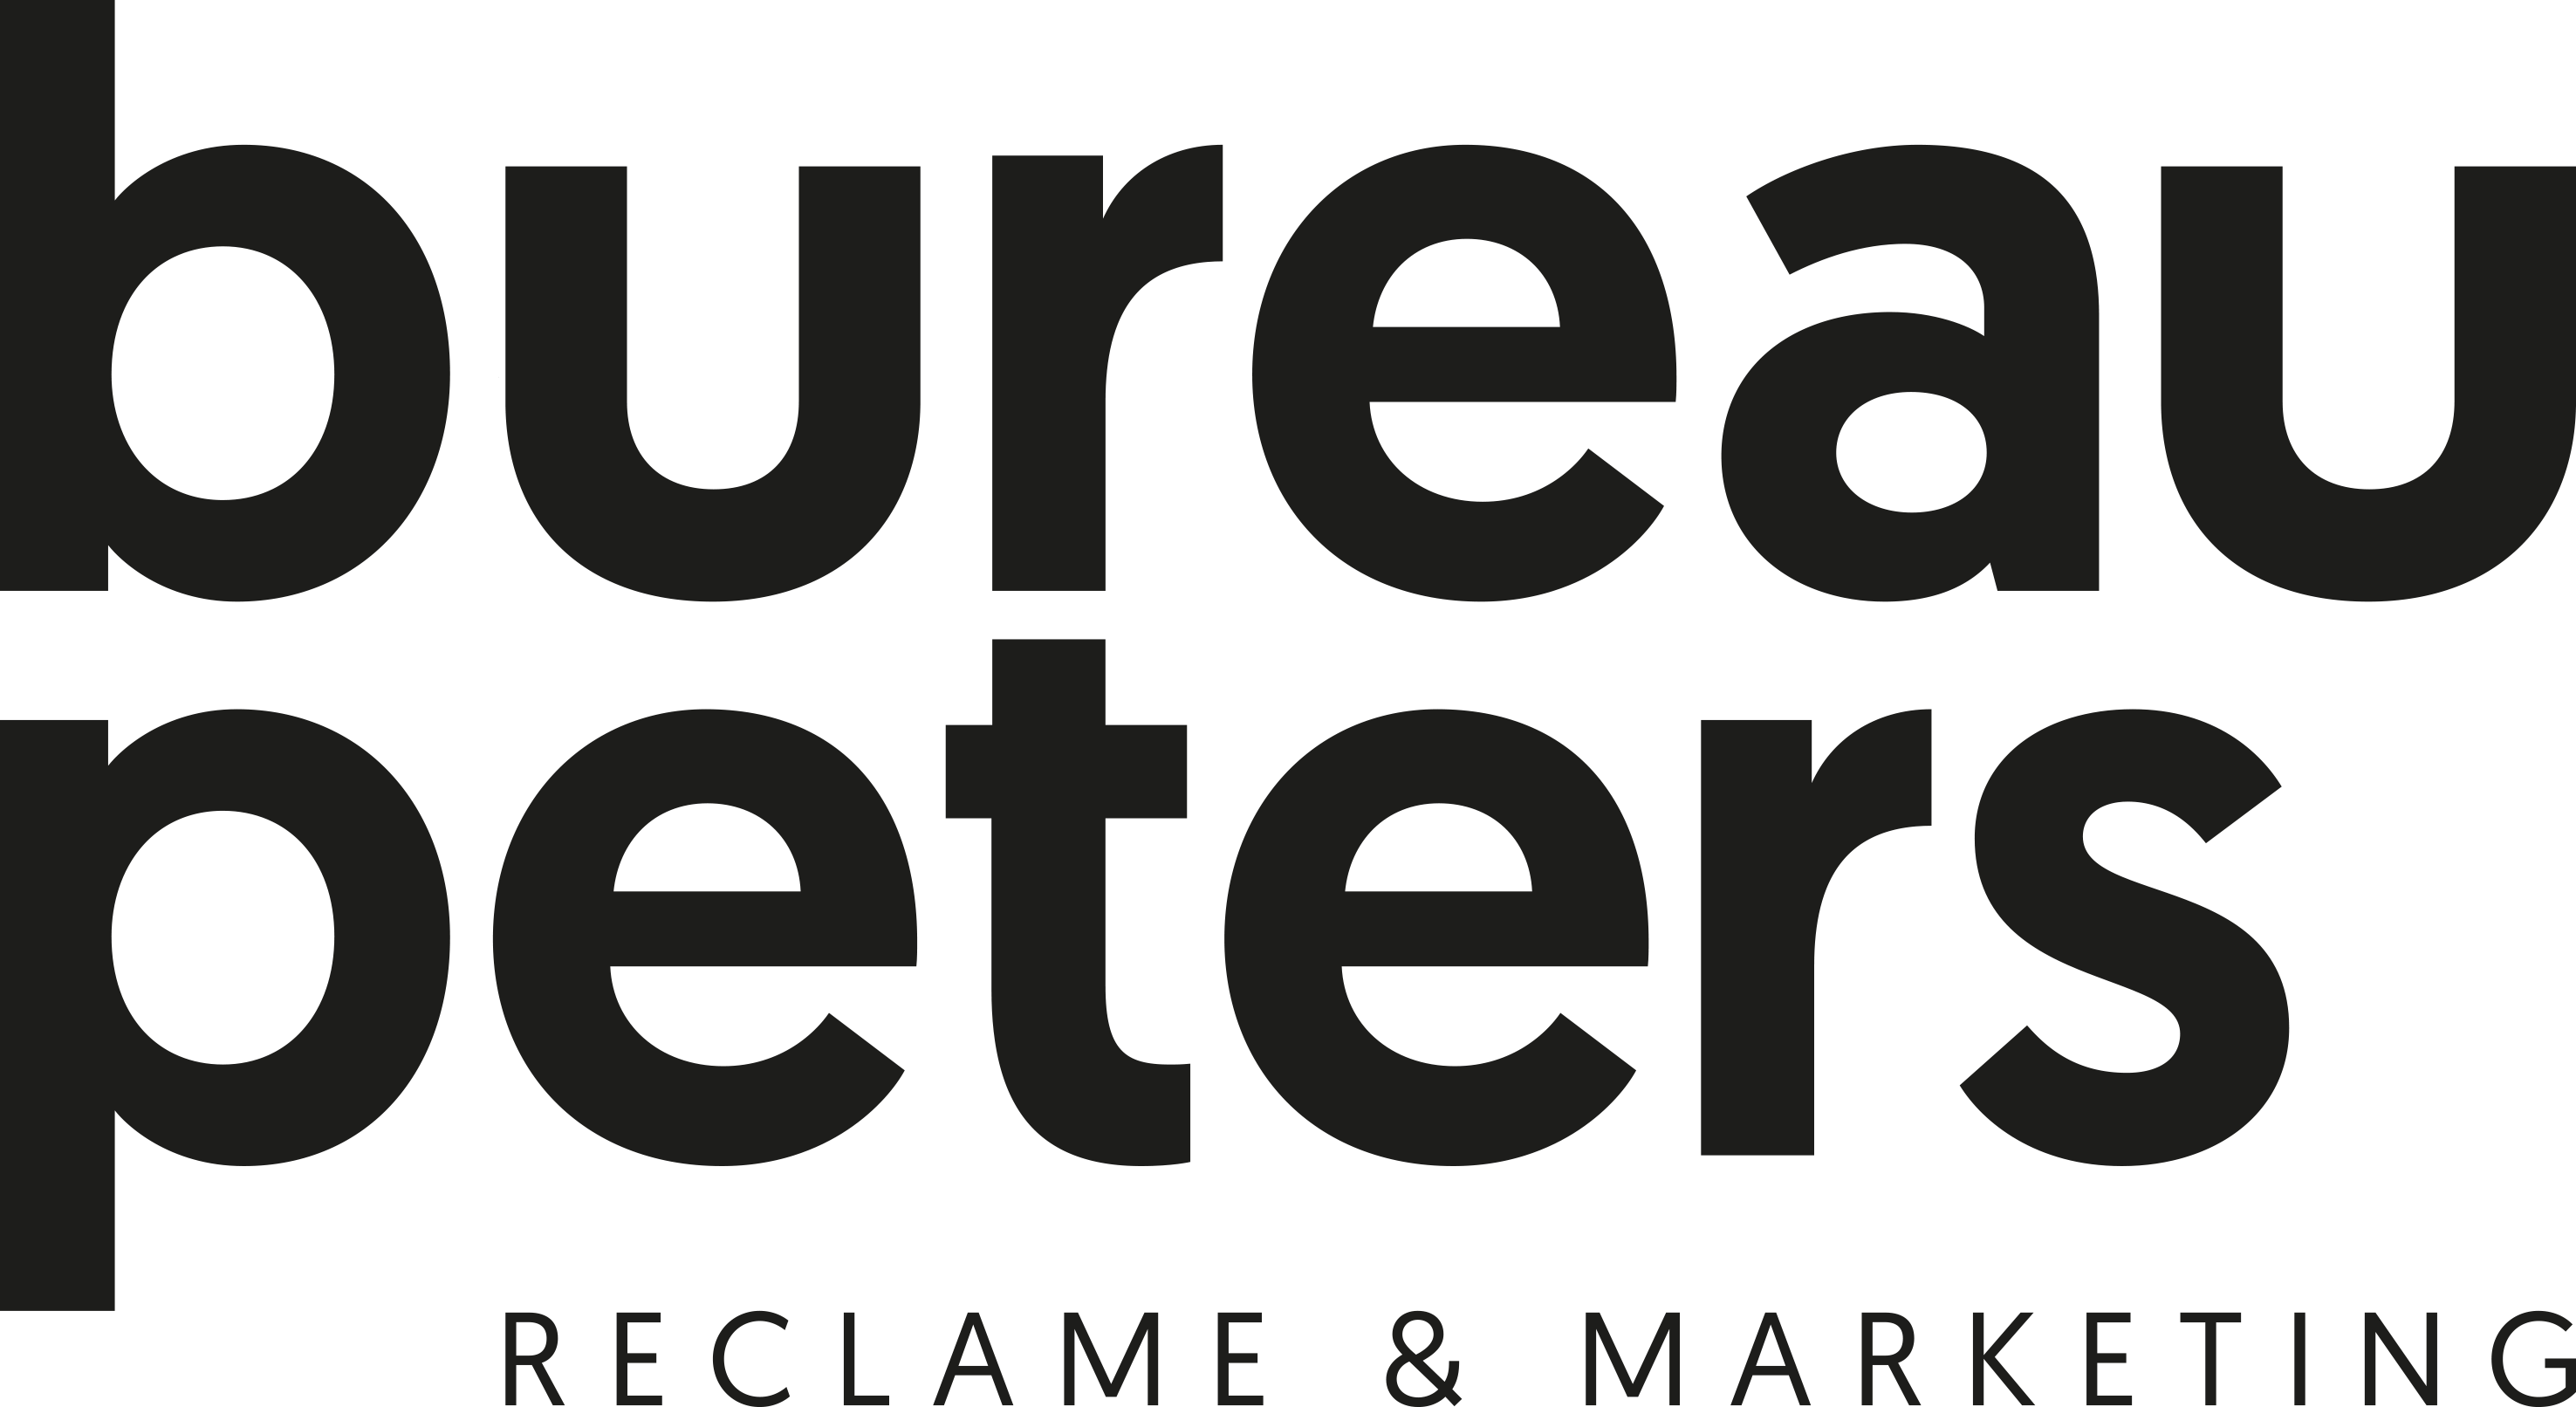 Bureau Peters reclame en marketing